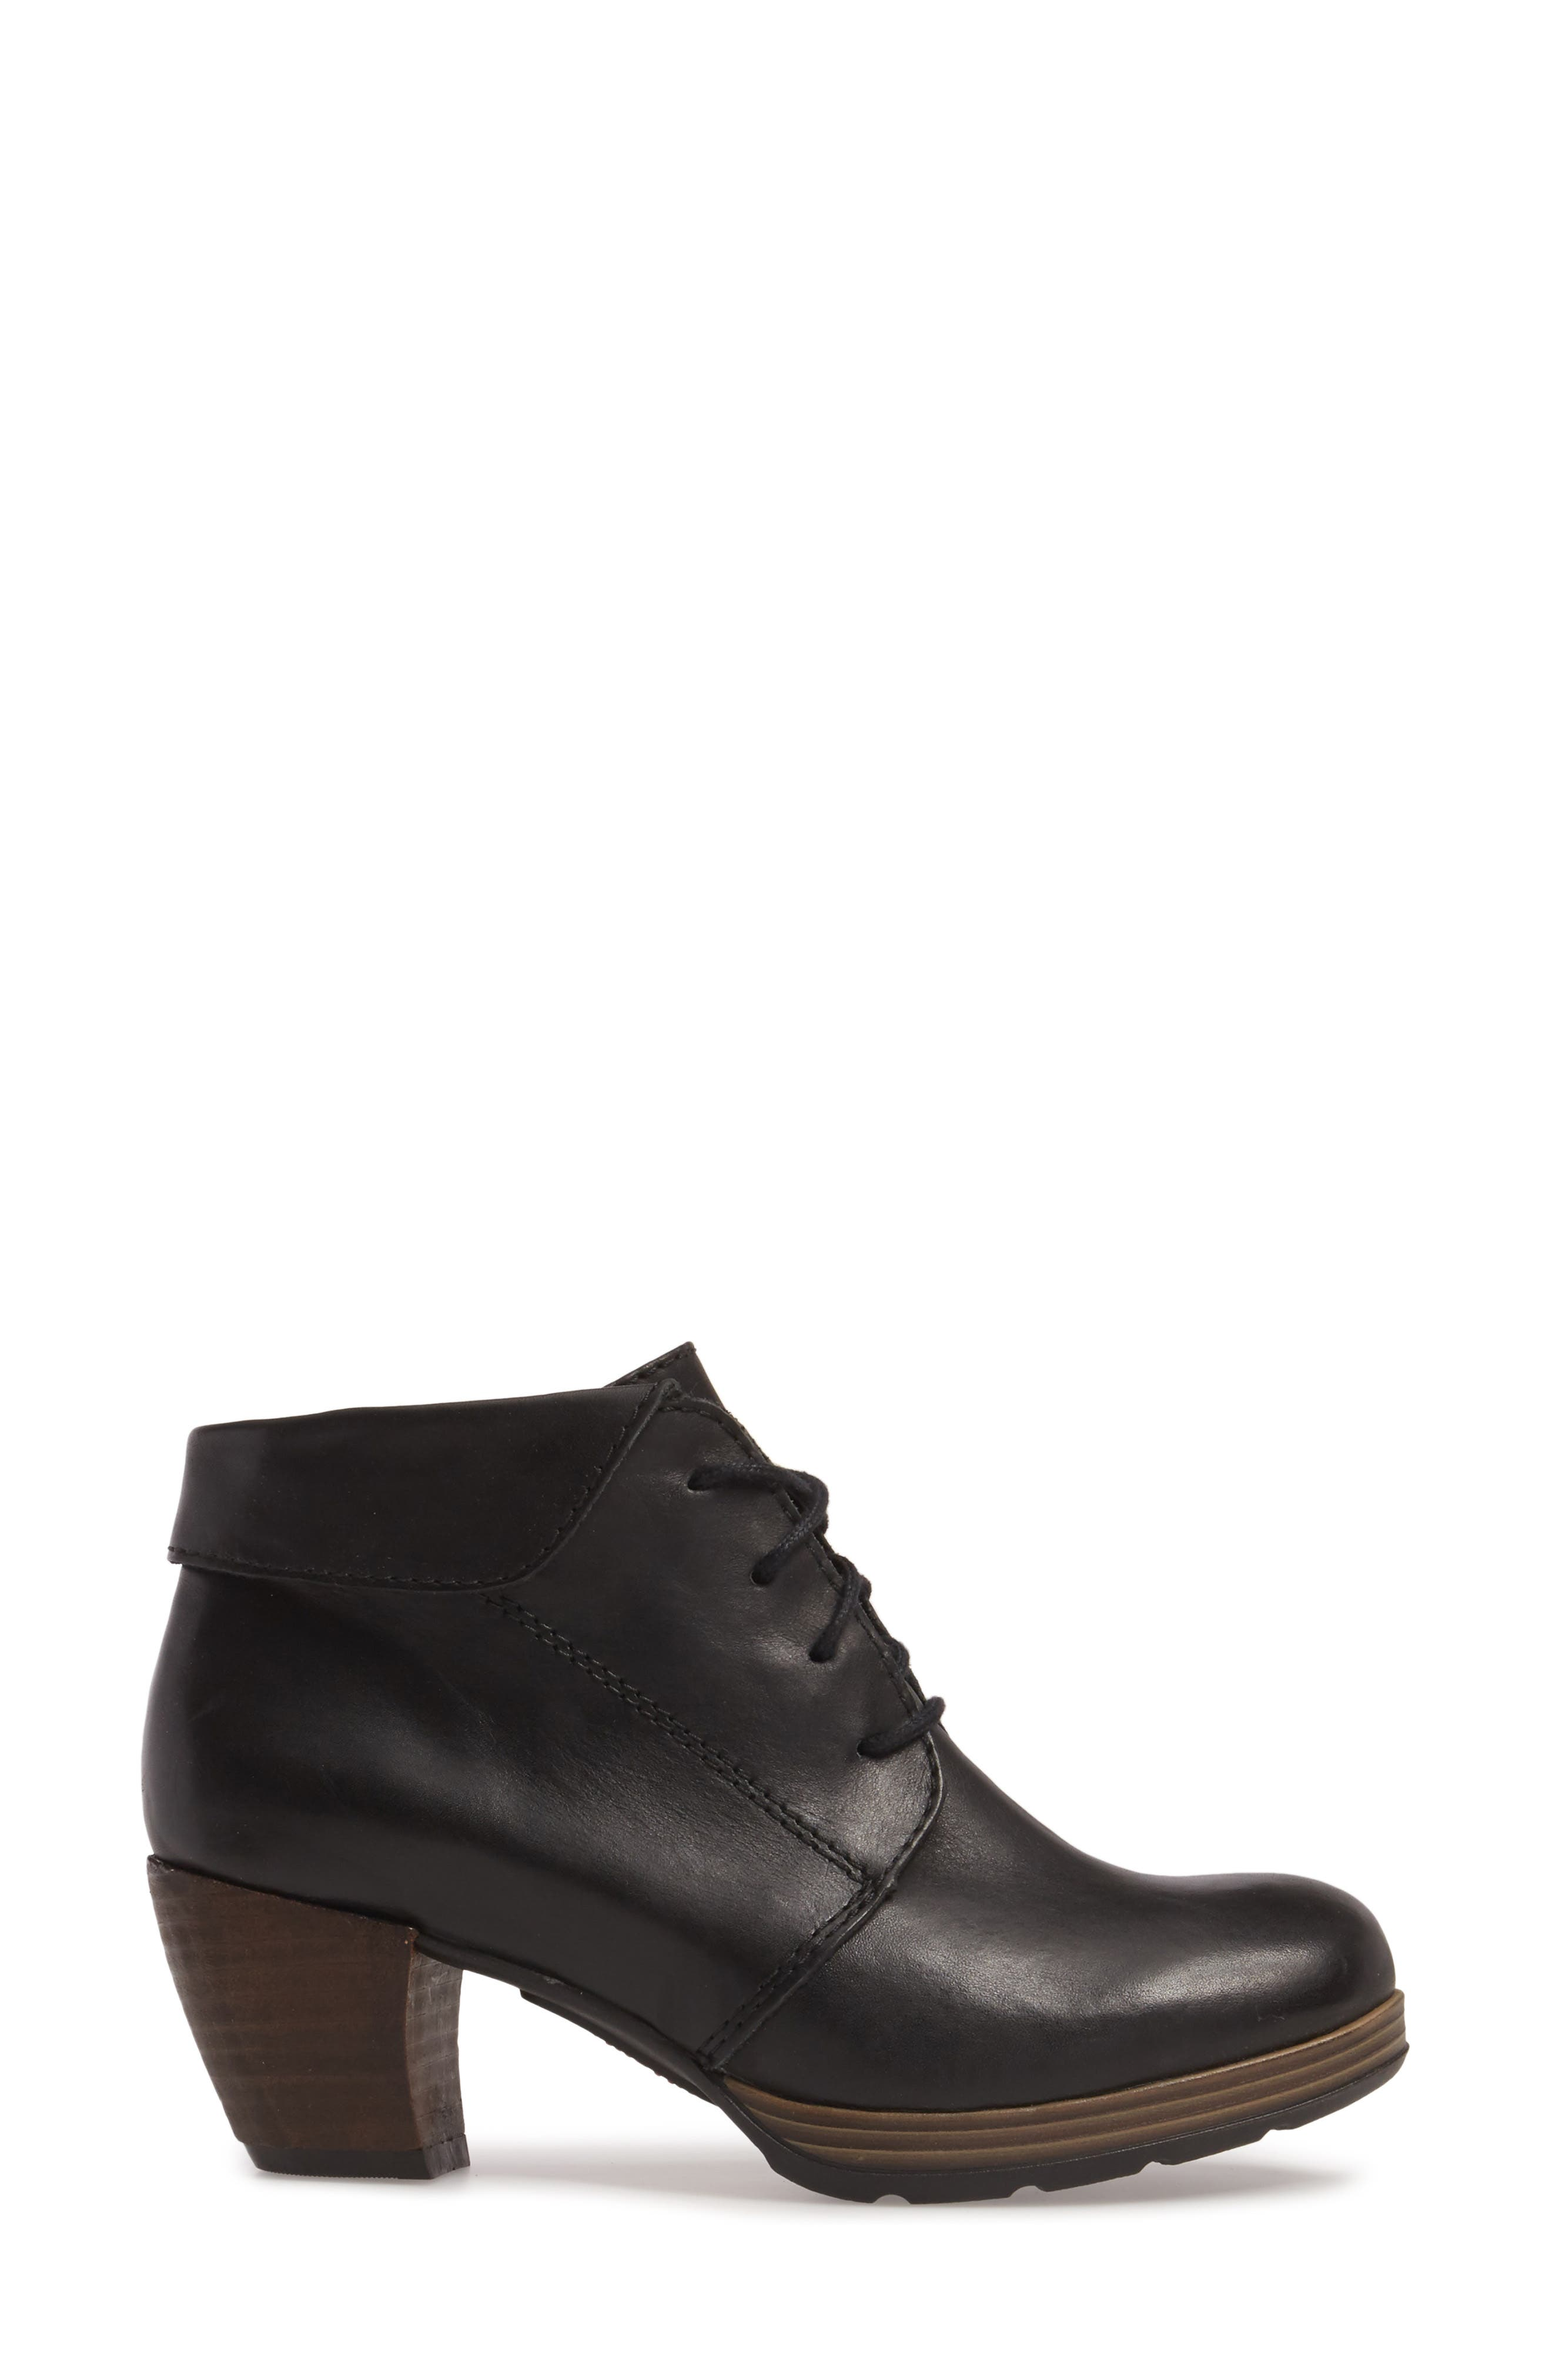 Jacquerie Lace-Up Bootie,                             Alternate thumbnail 3, color,                             Black Leather